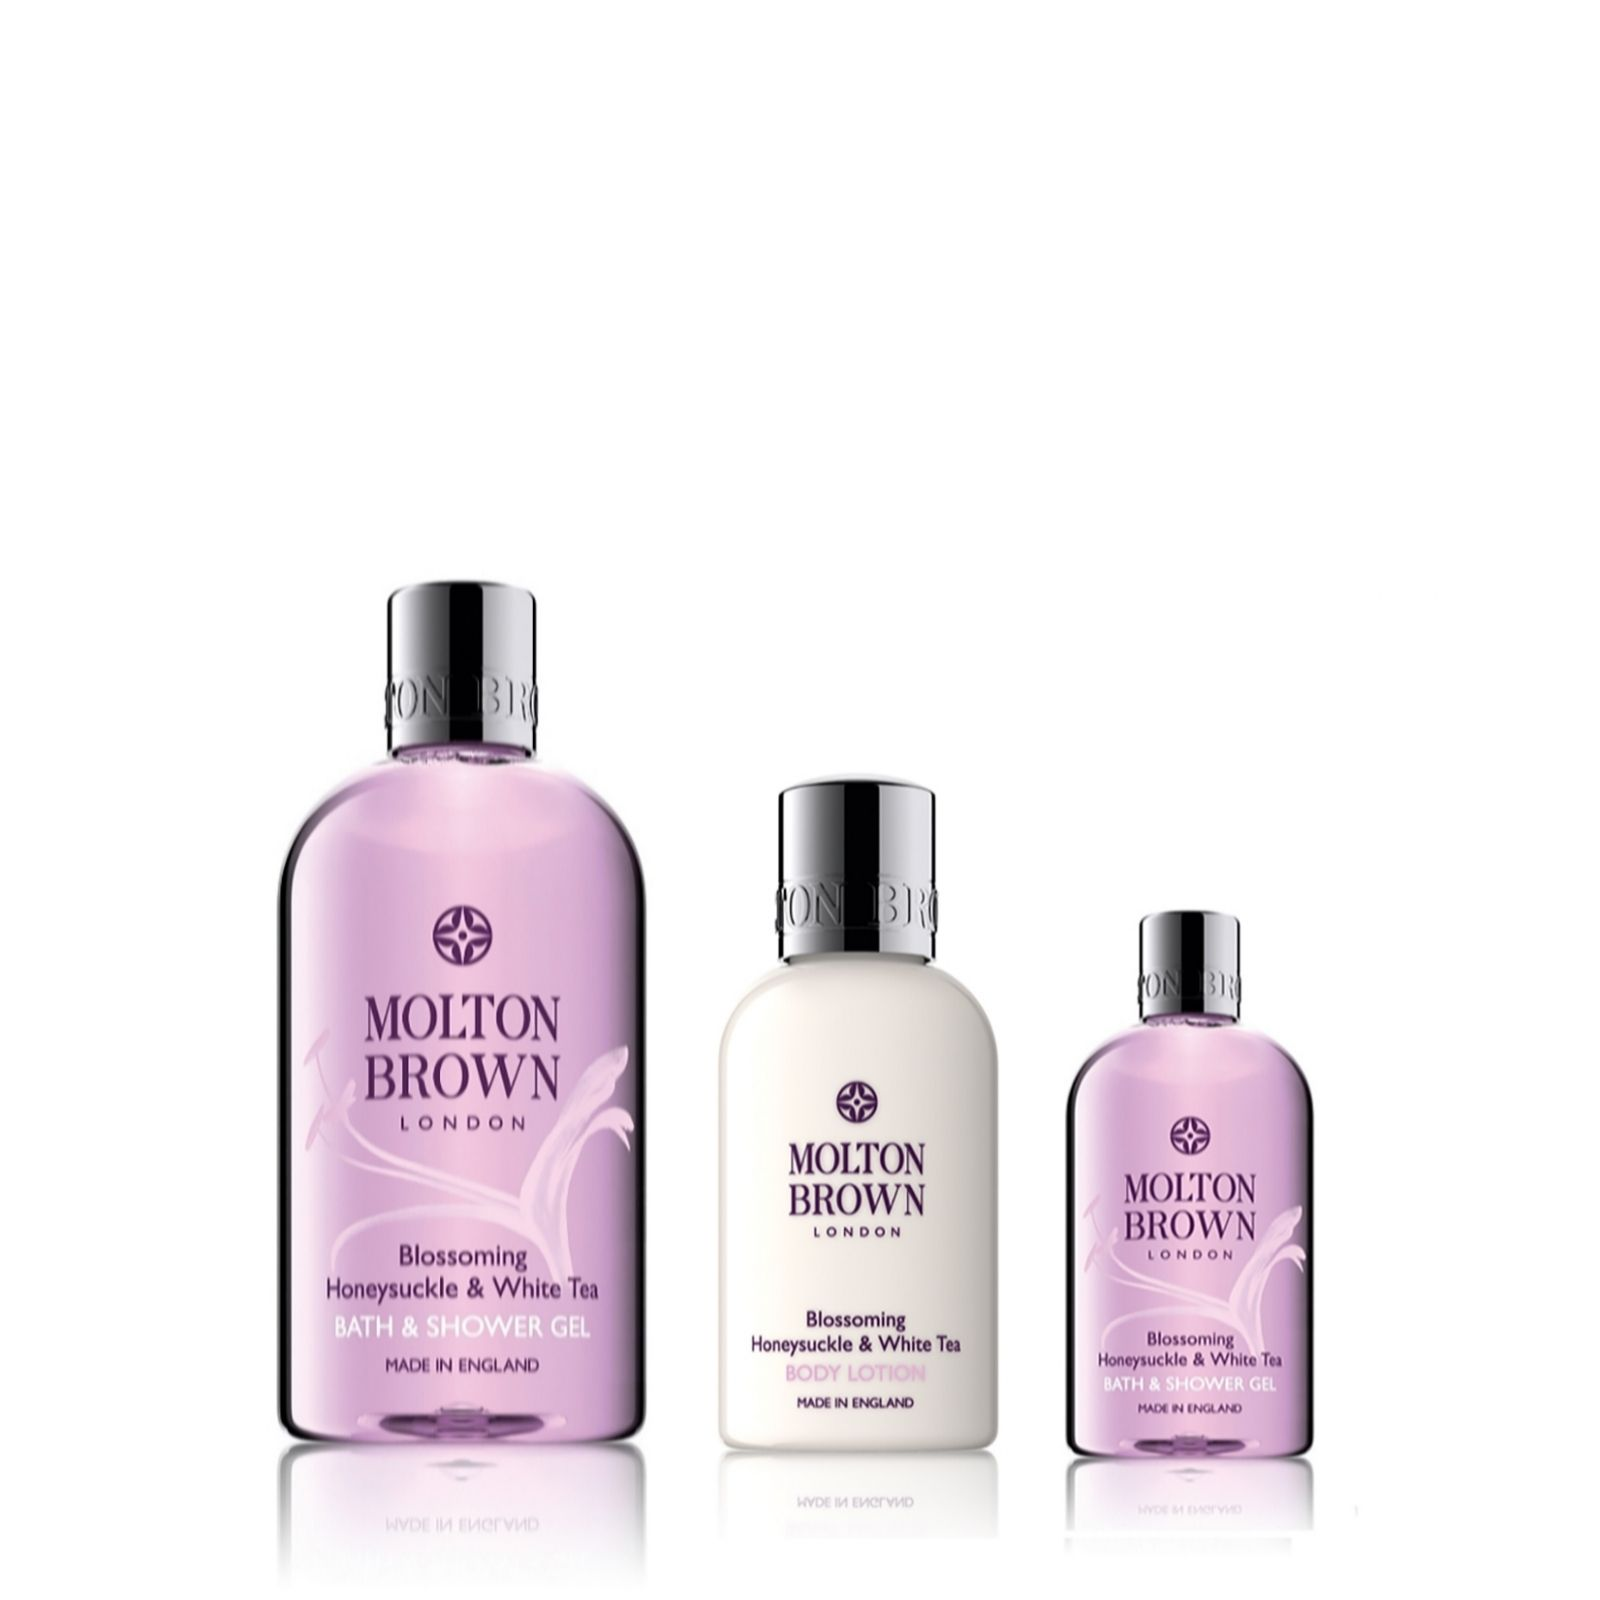 molton brown blossoming honeysuckle white tea 3 piece body molton brown blossoming honeysuckle white tea 3 piece body collection qvc uk